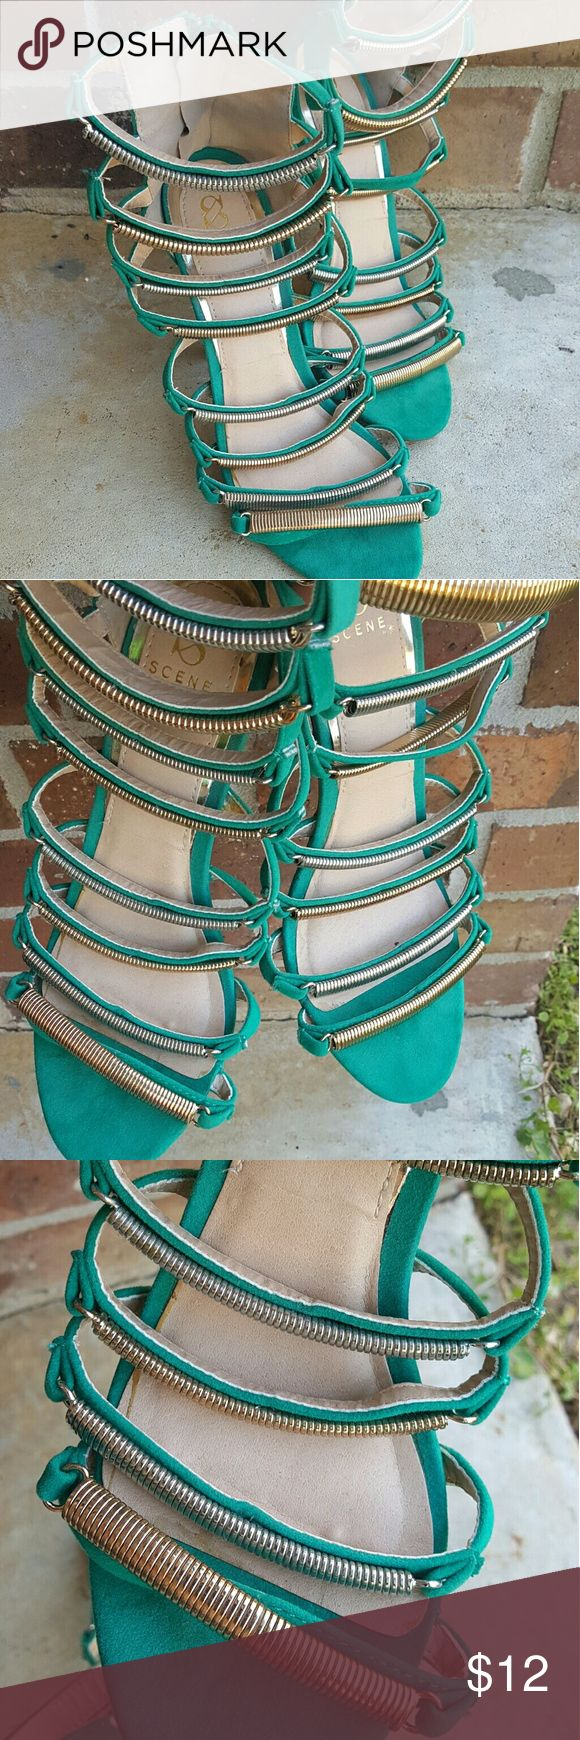 "Scene by ""Shoe Dazzle"" Green strappy heels Amazing color   Worn 1 time  Price reflects metal that is no longer fully attached on 1 shoe   No trades Scene  Shoes Heels"